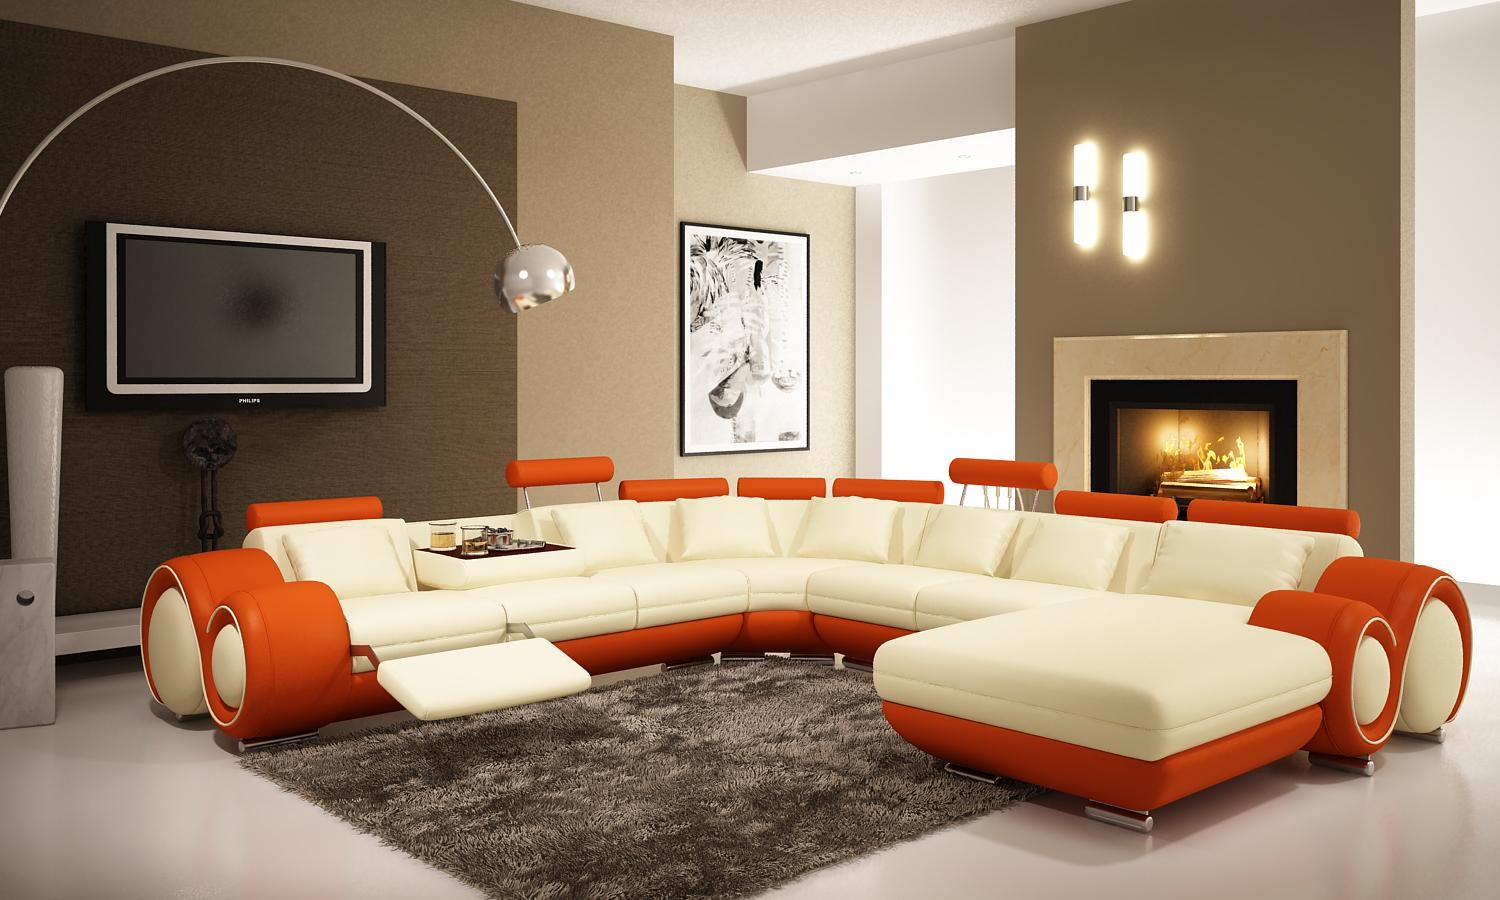 11 Awesome Home Furniture Ideas To Inspire You